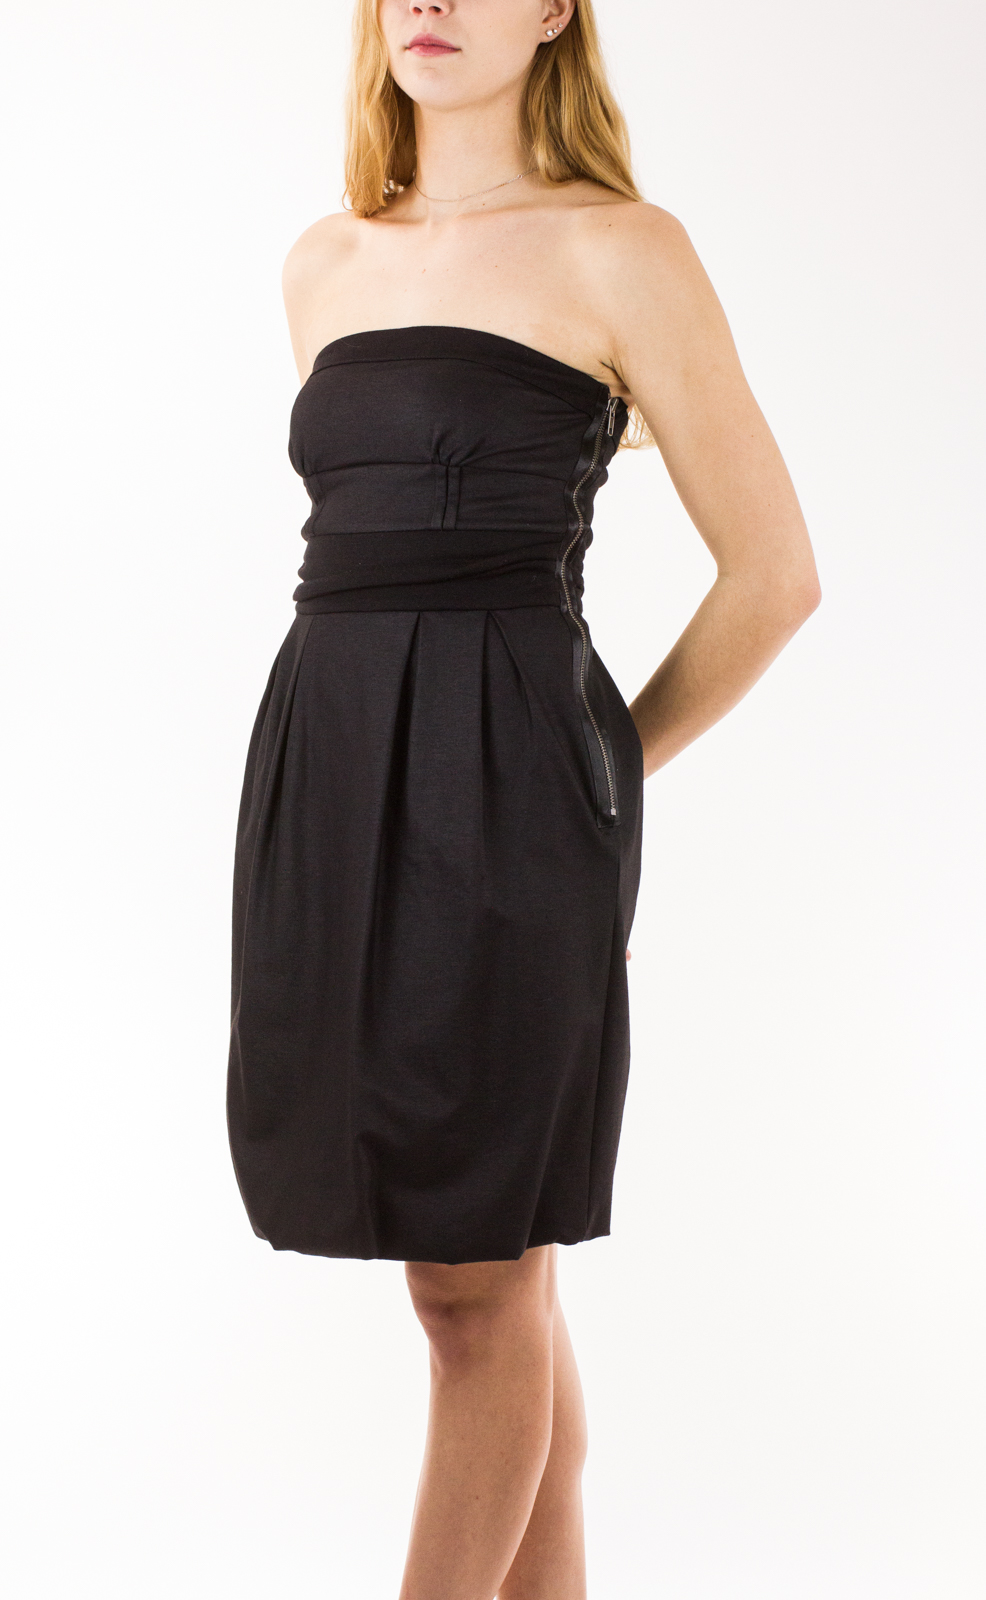 strapless black knee length dress